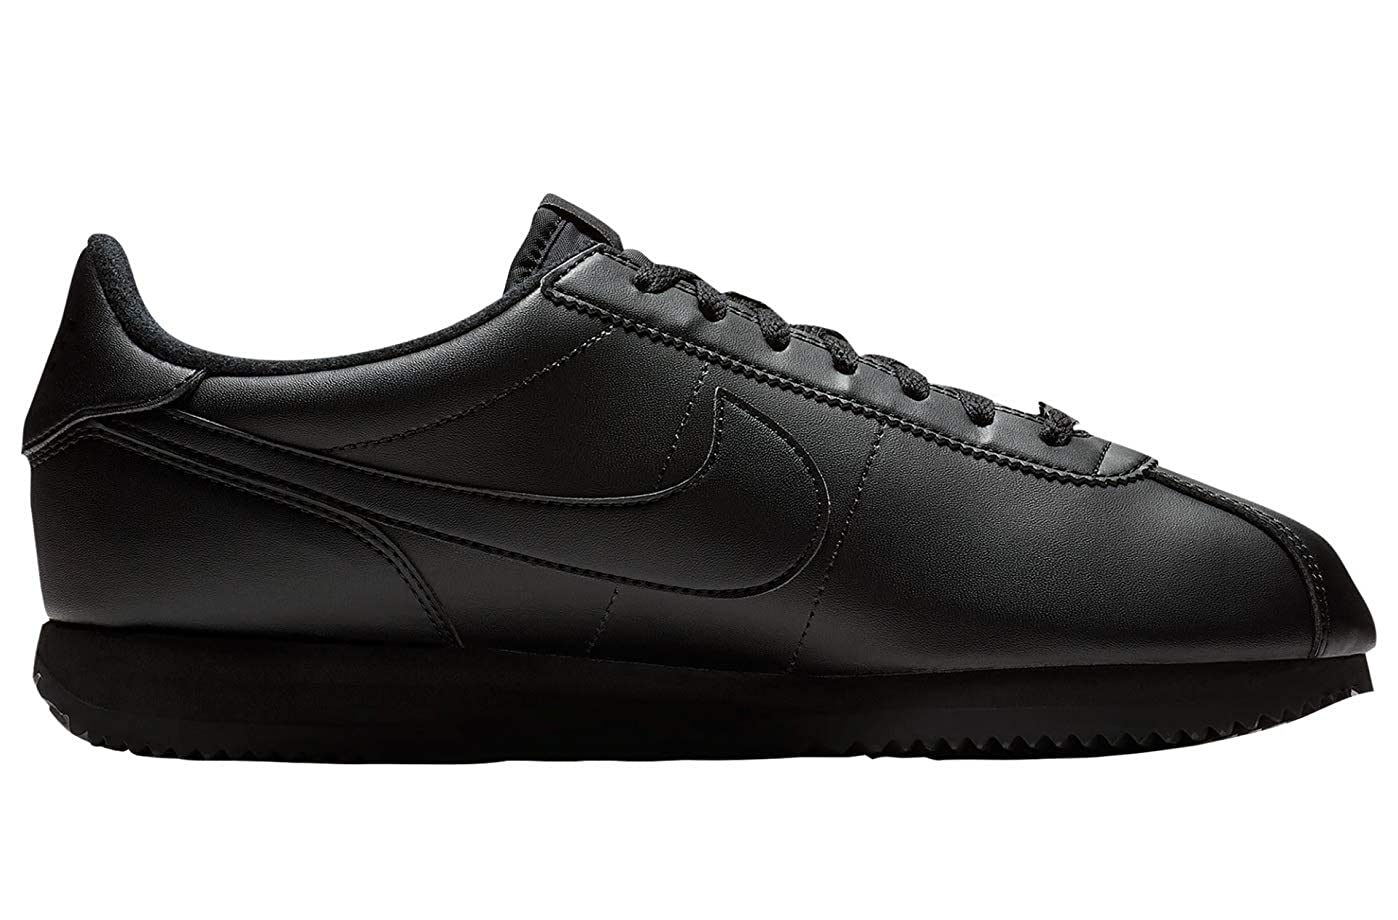 separation shoes f8f31 e999d Amazon.com   Nike Men s Classic Cortez Leather Casual Shoe   Fashion  Sneakers